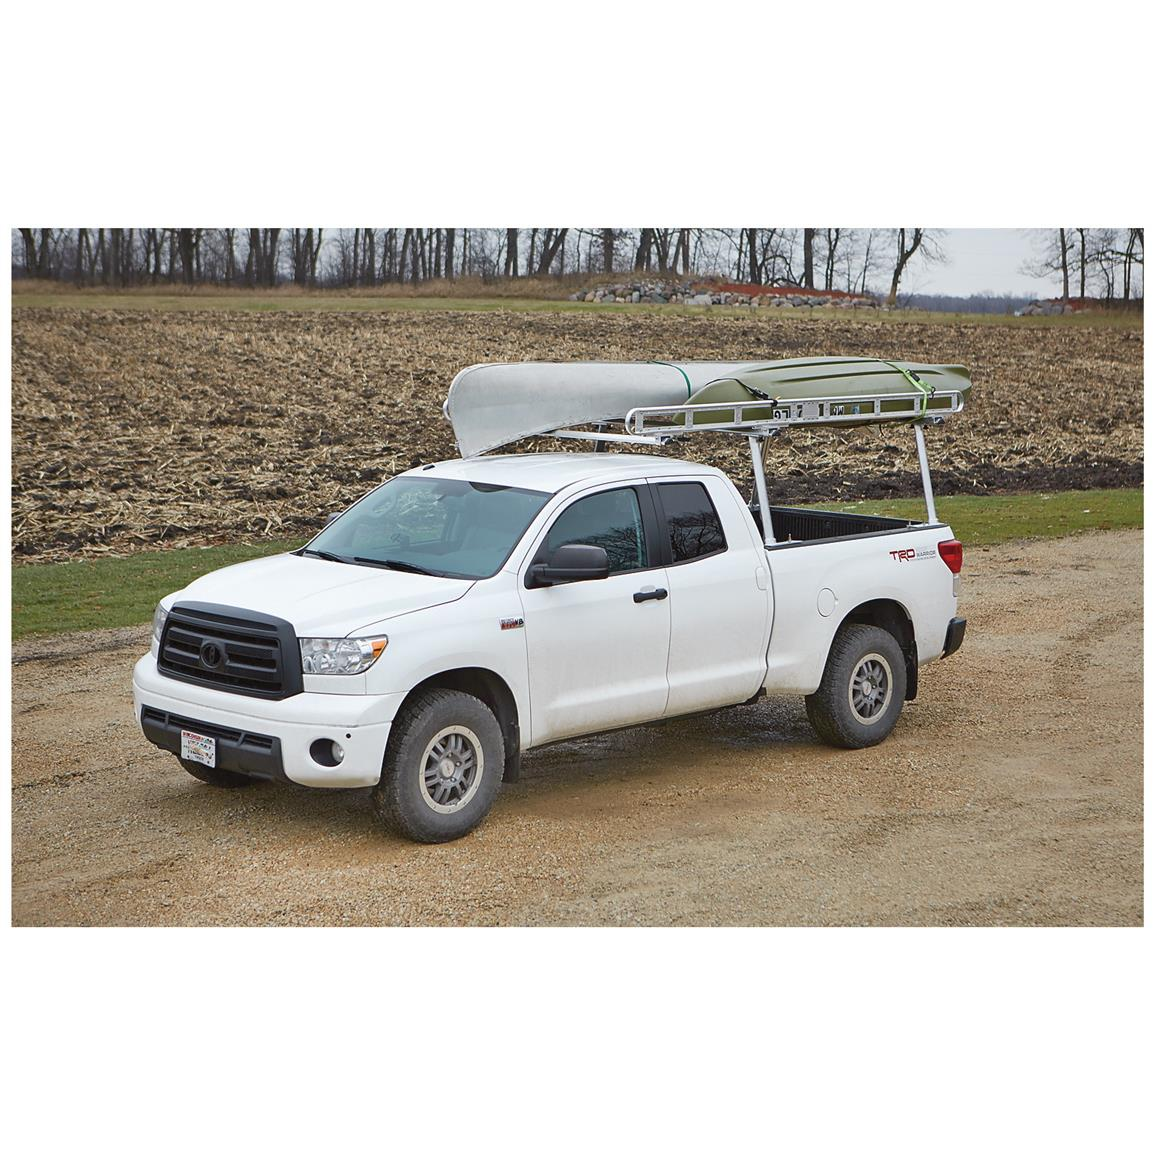 Extends over the cab for safely hauling long cargo